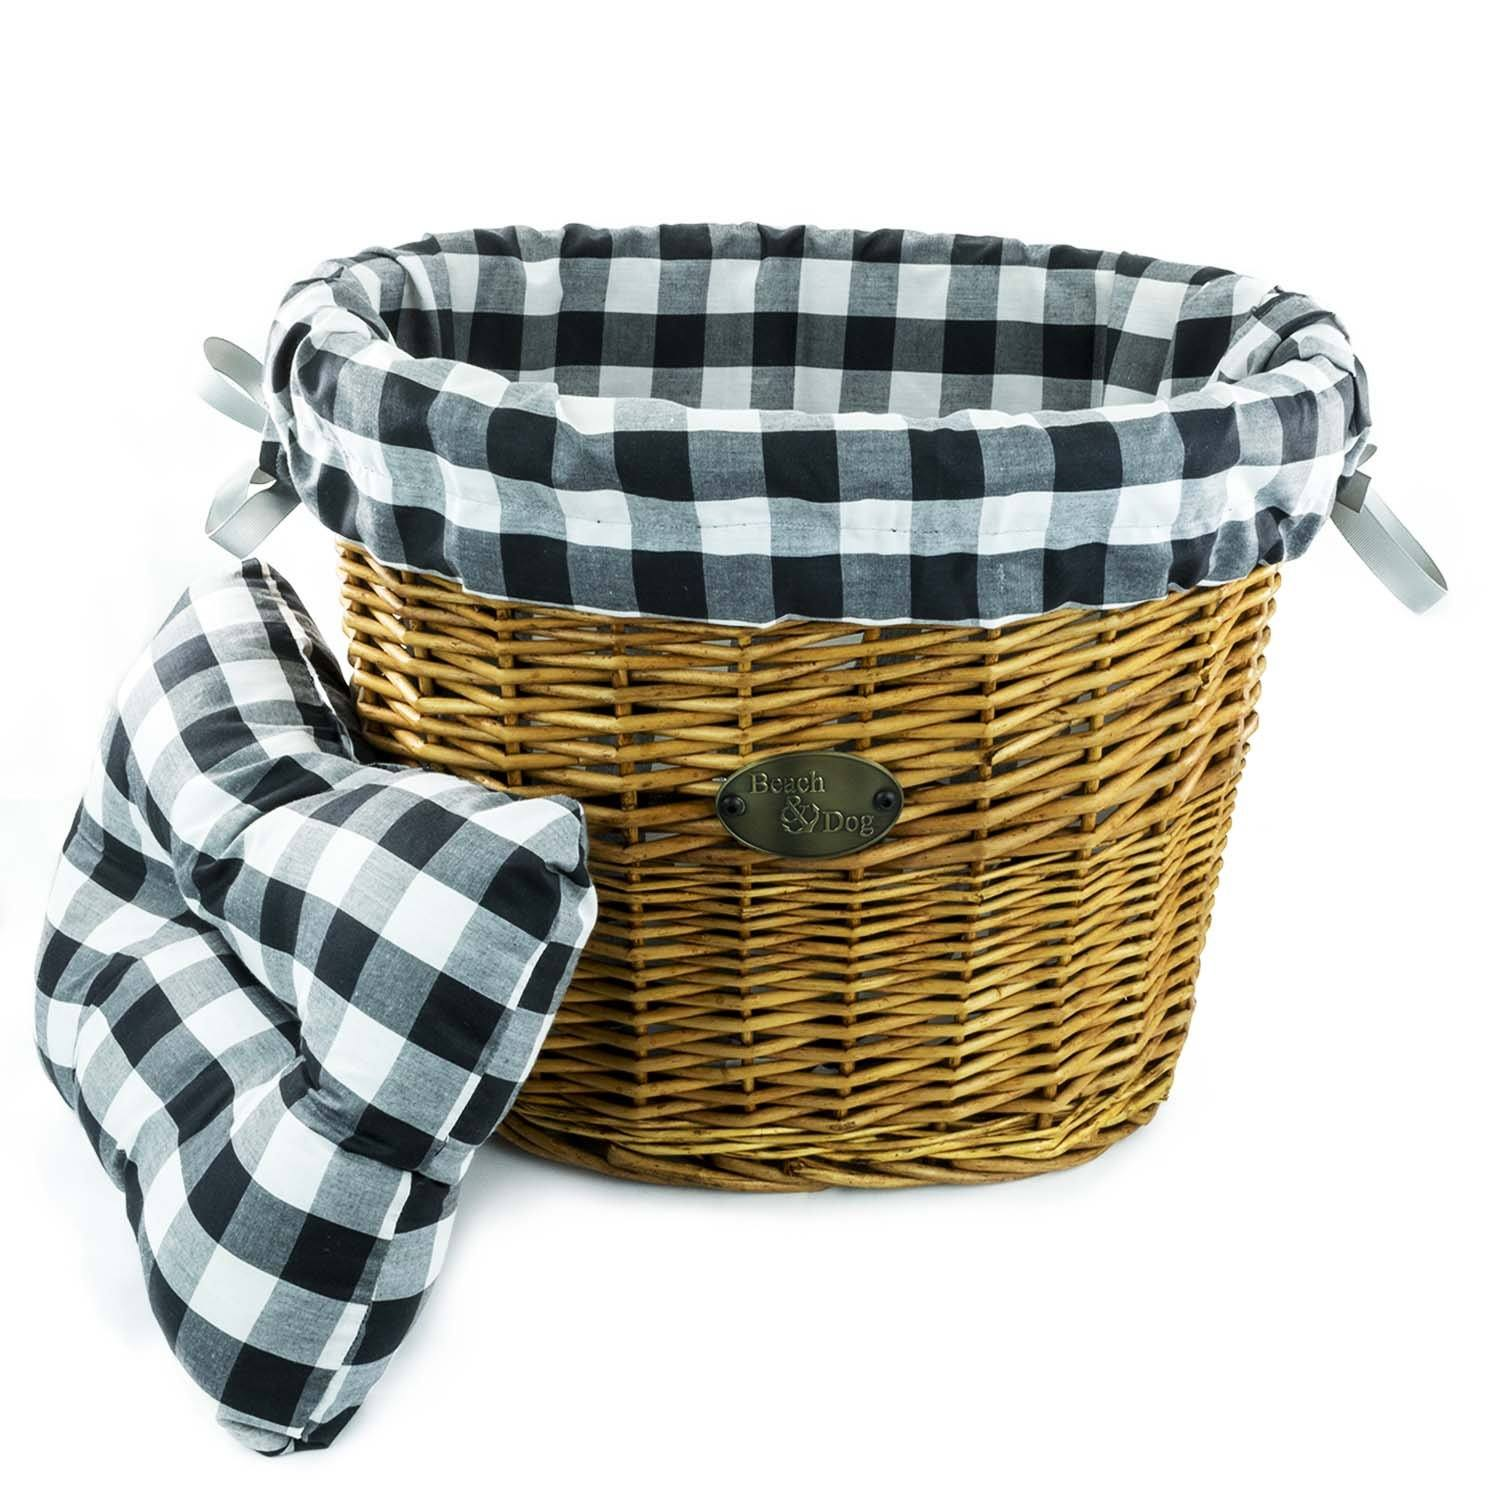 Picnic on the Beach Basket Liner - Beach & Dog Co.